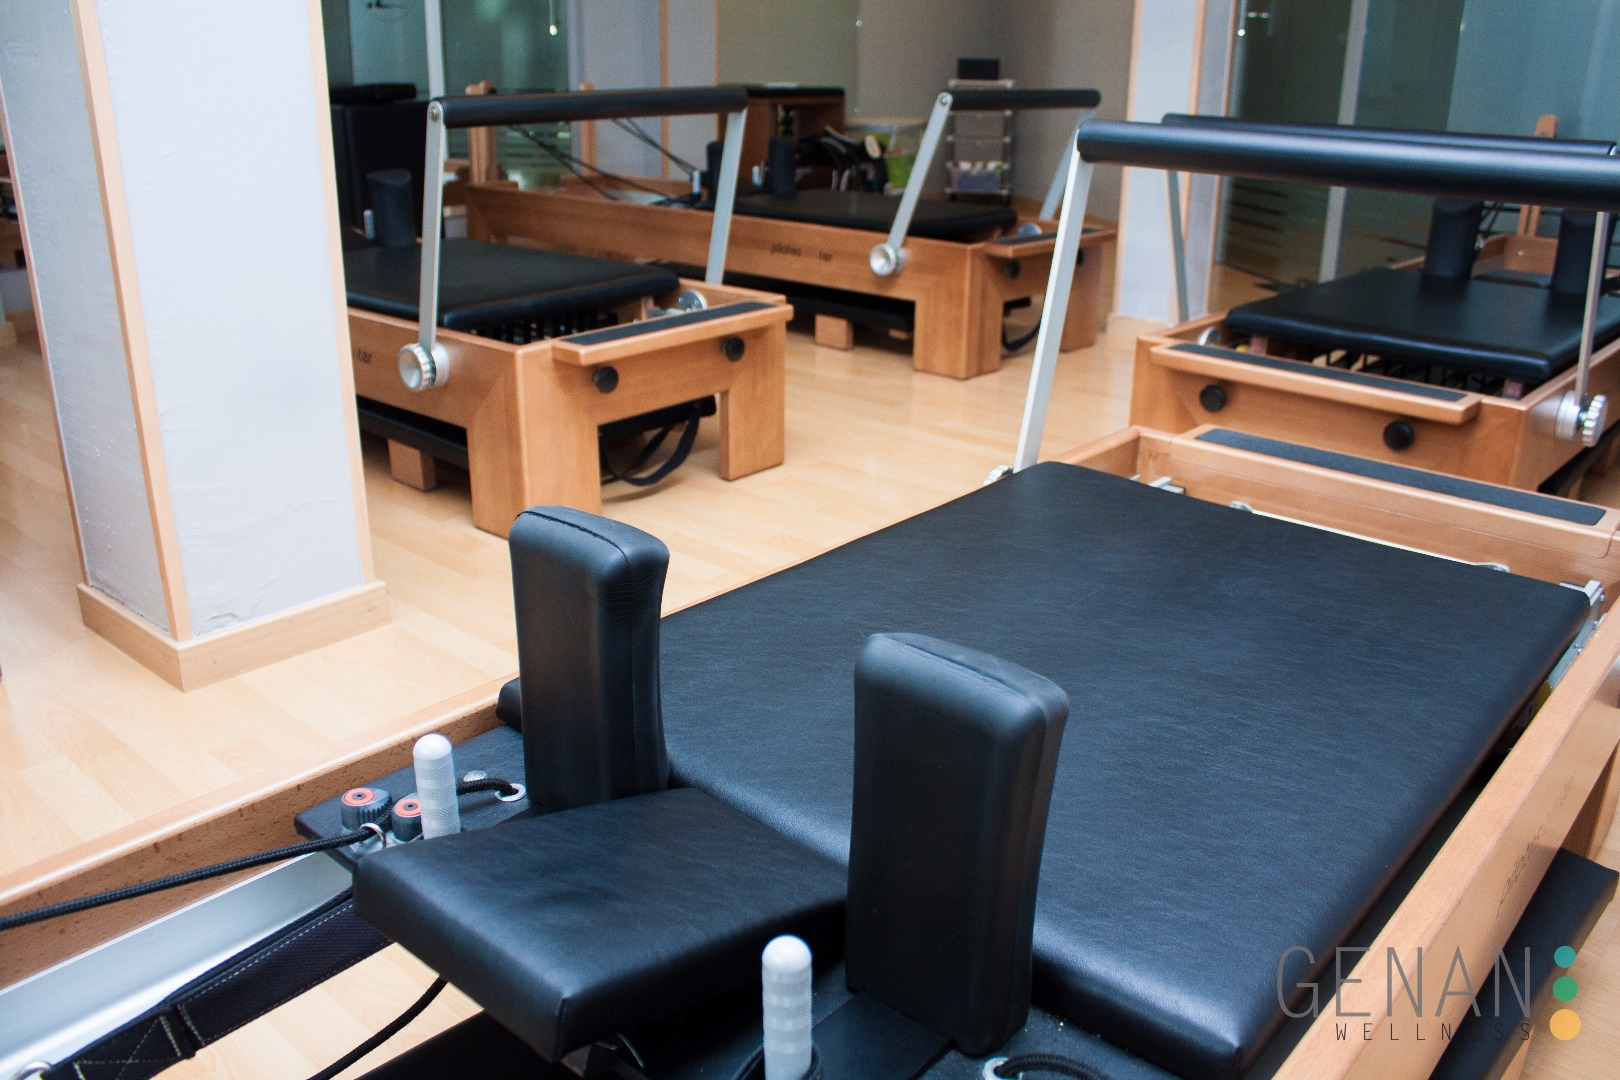 Picture 2 Deals for Gym Genan Wellness Barcelona